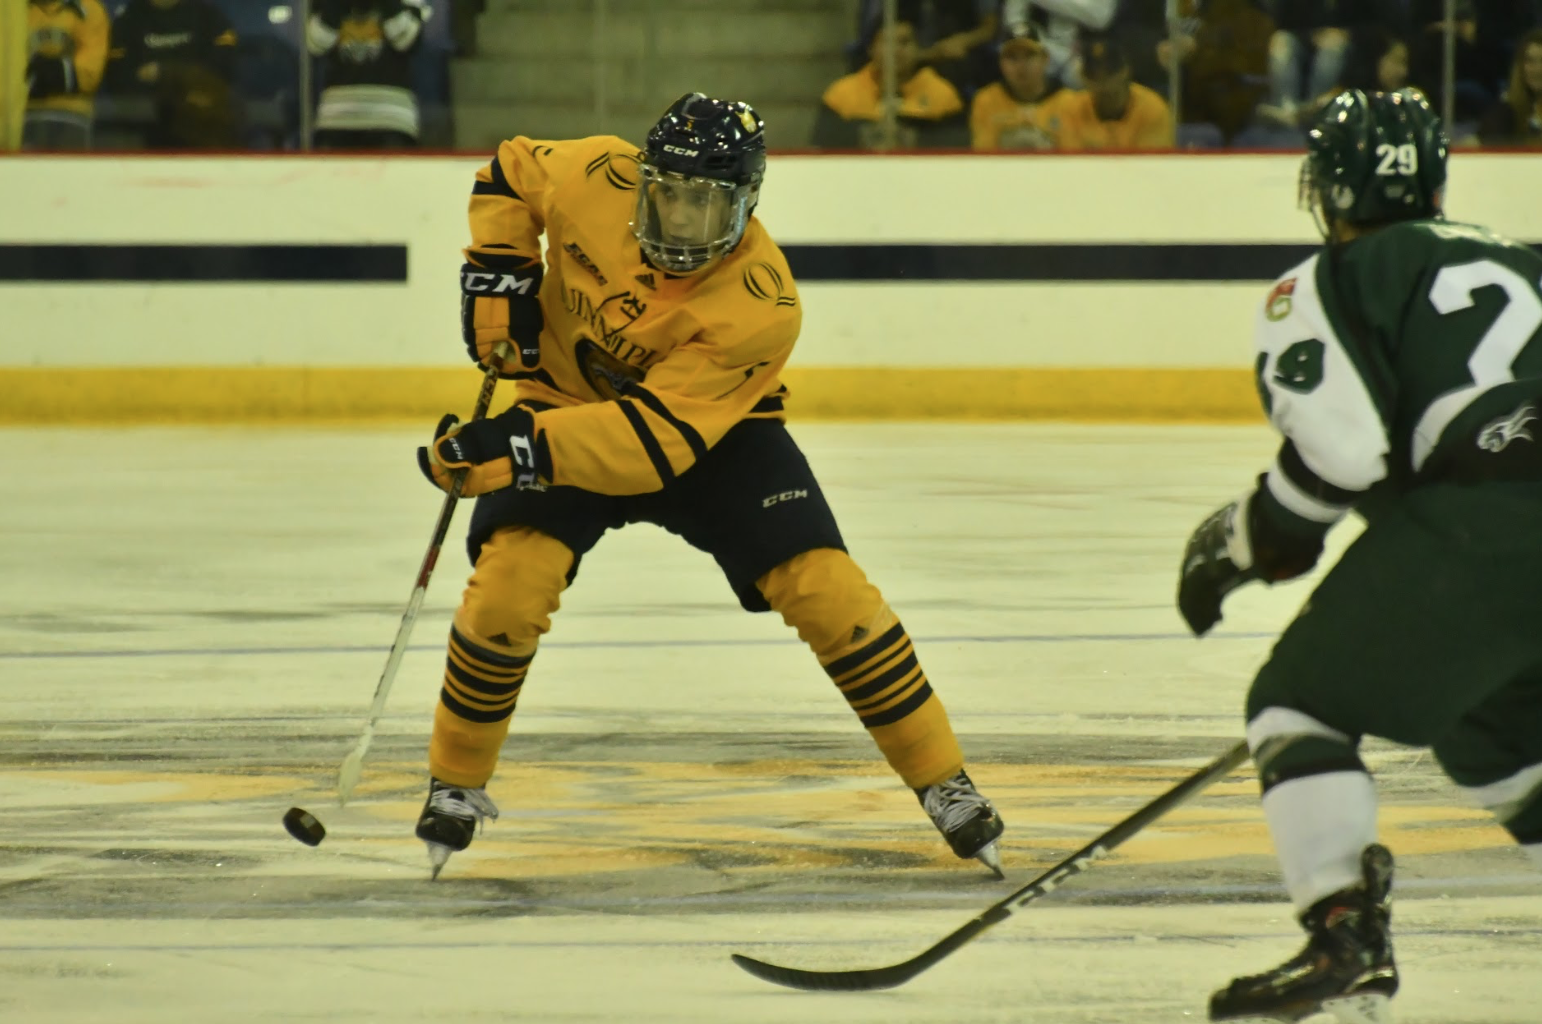 Quinnipiac men's ice hockey beats UPEI in exhibition game, 5-2